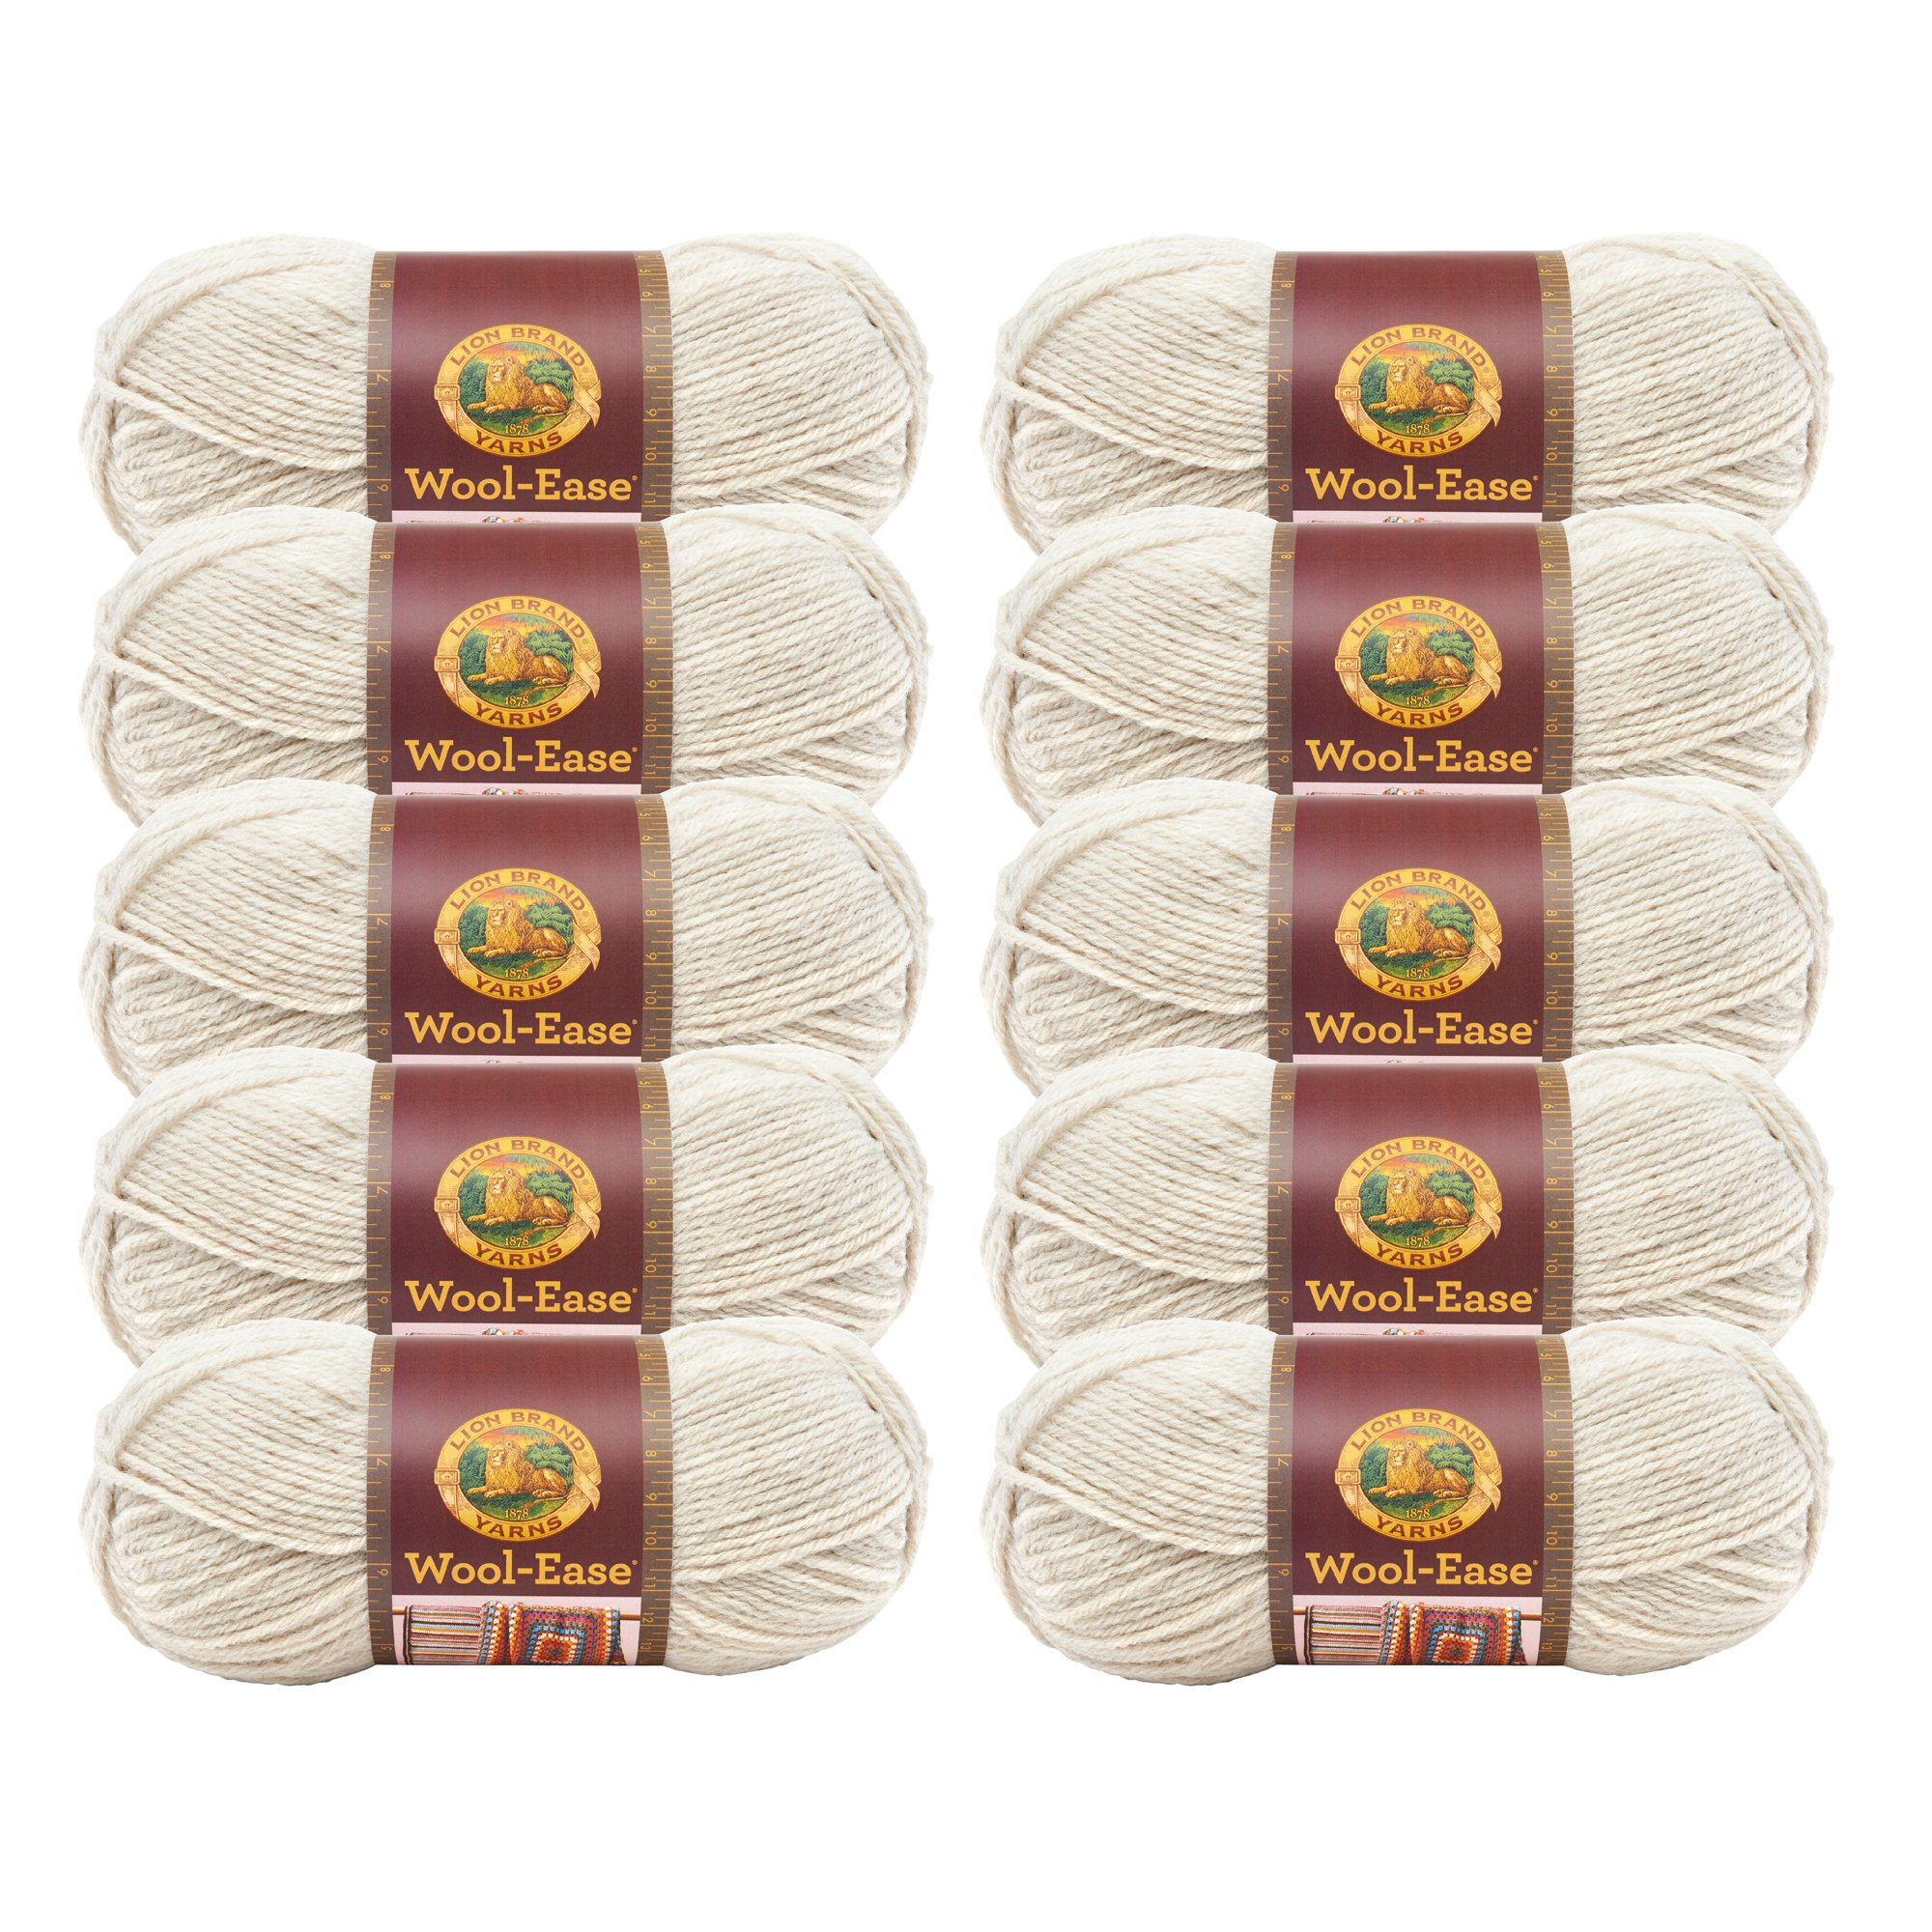 (10 Pack) Lion Brand Yarn 620-098 Wool-Ease Yarn, Natural Heather